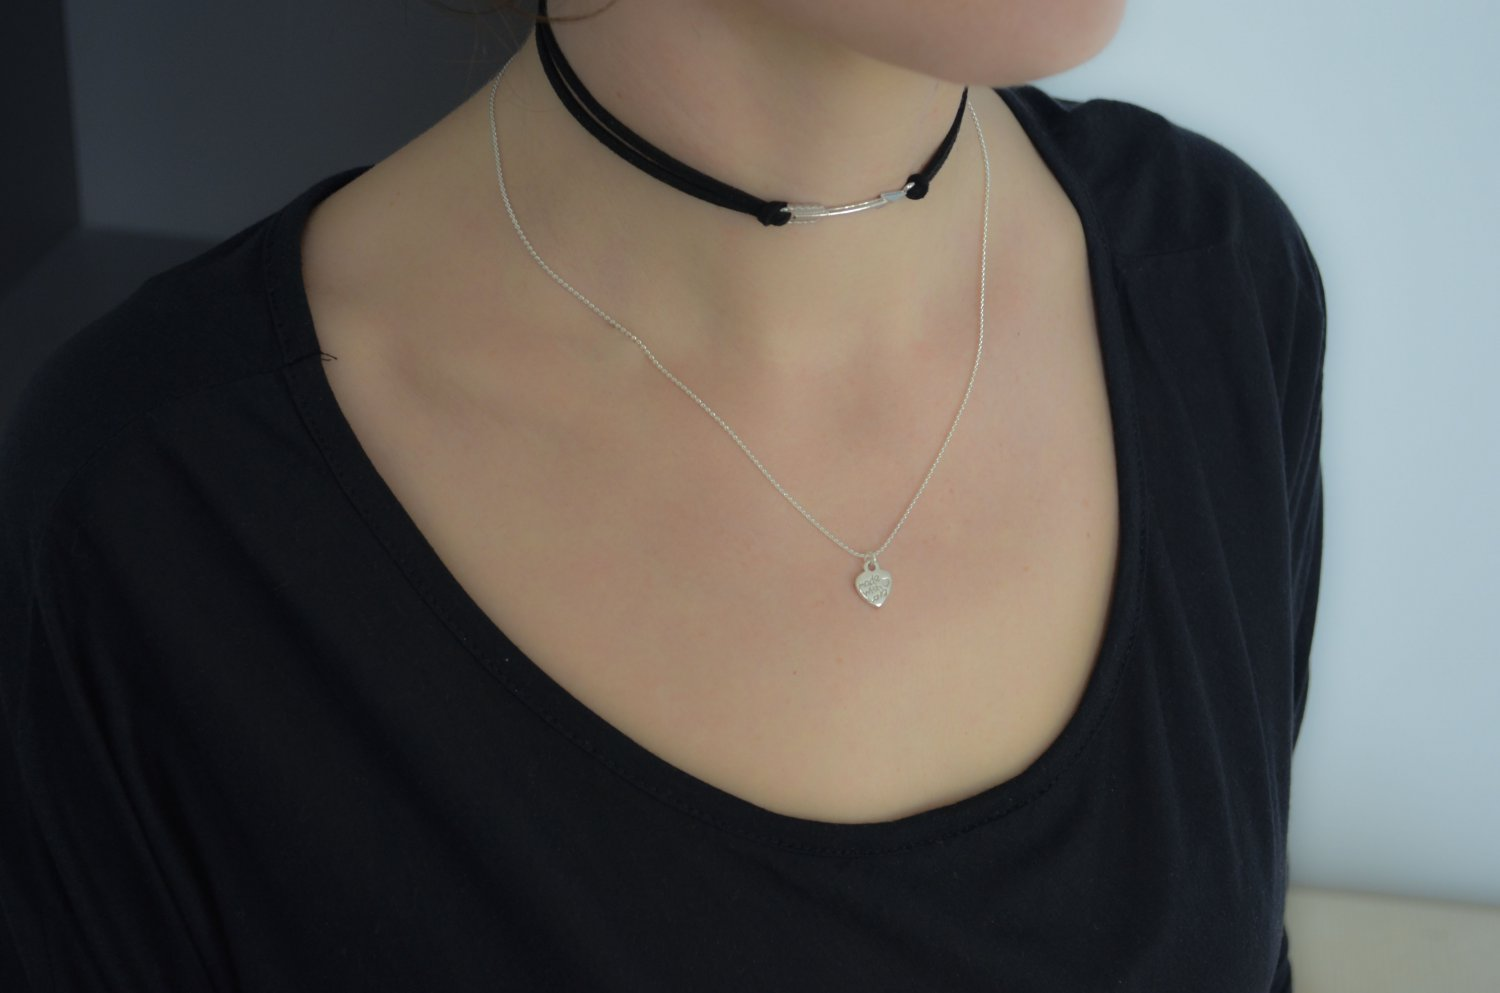 Black Suede Choker with Tibetan Silver Arrow Pendant